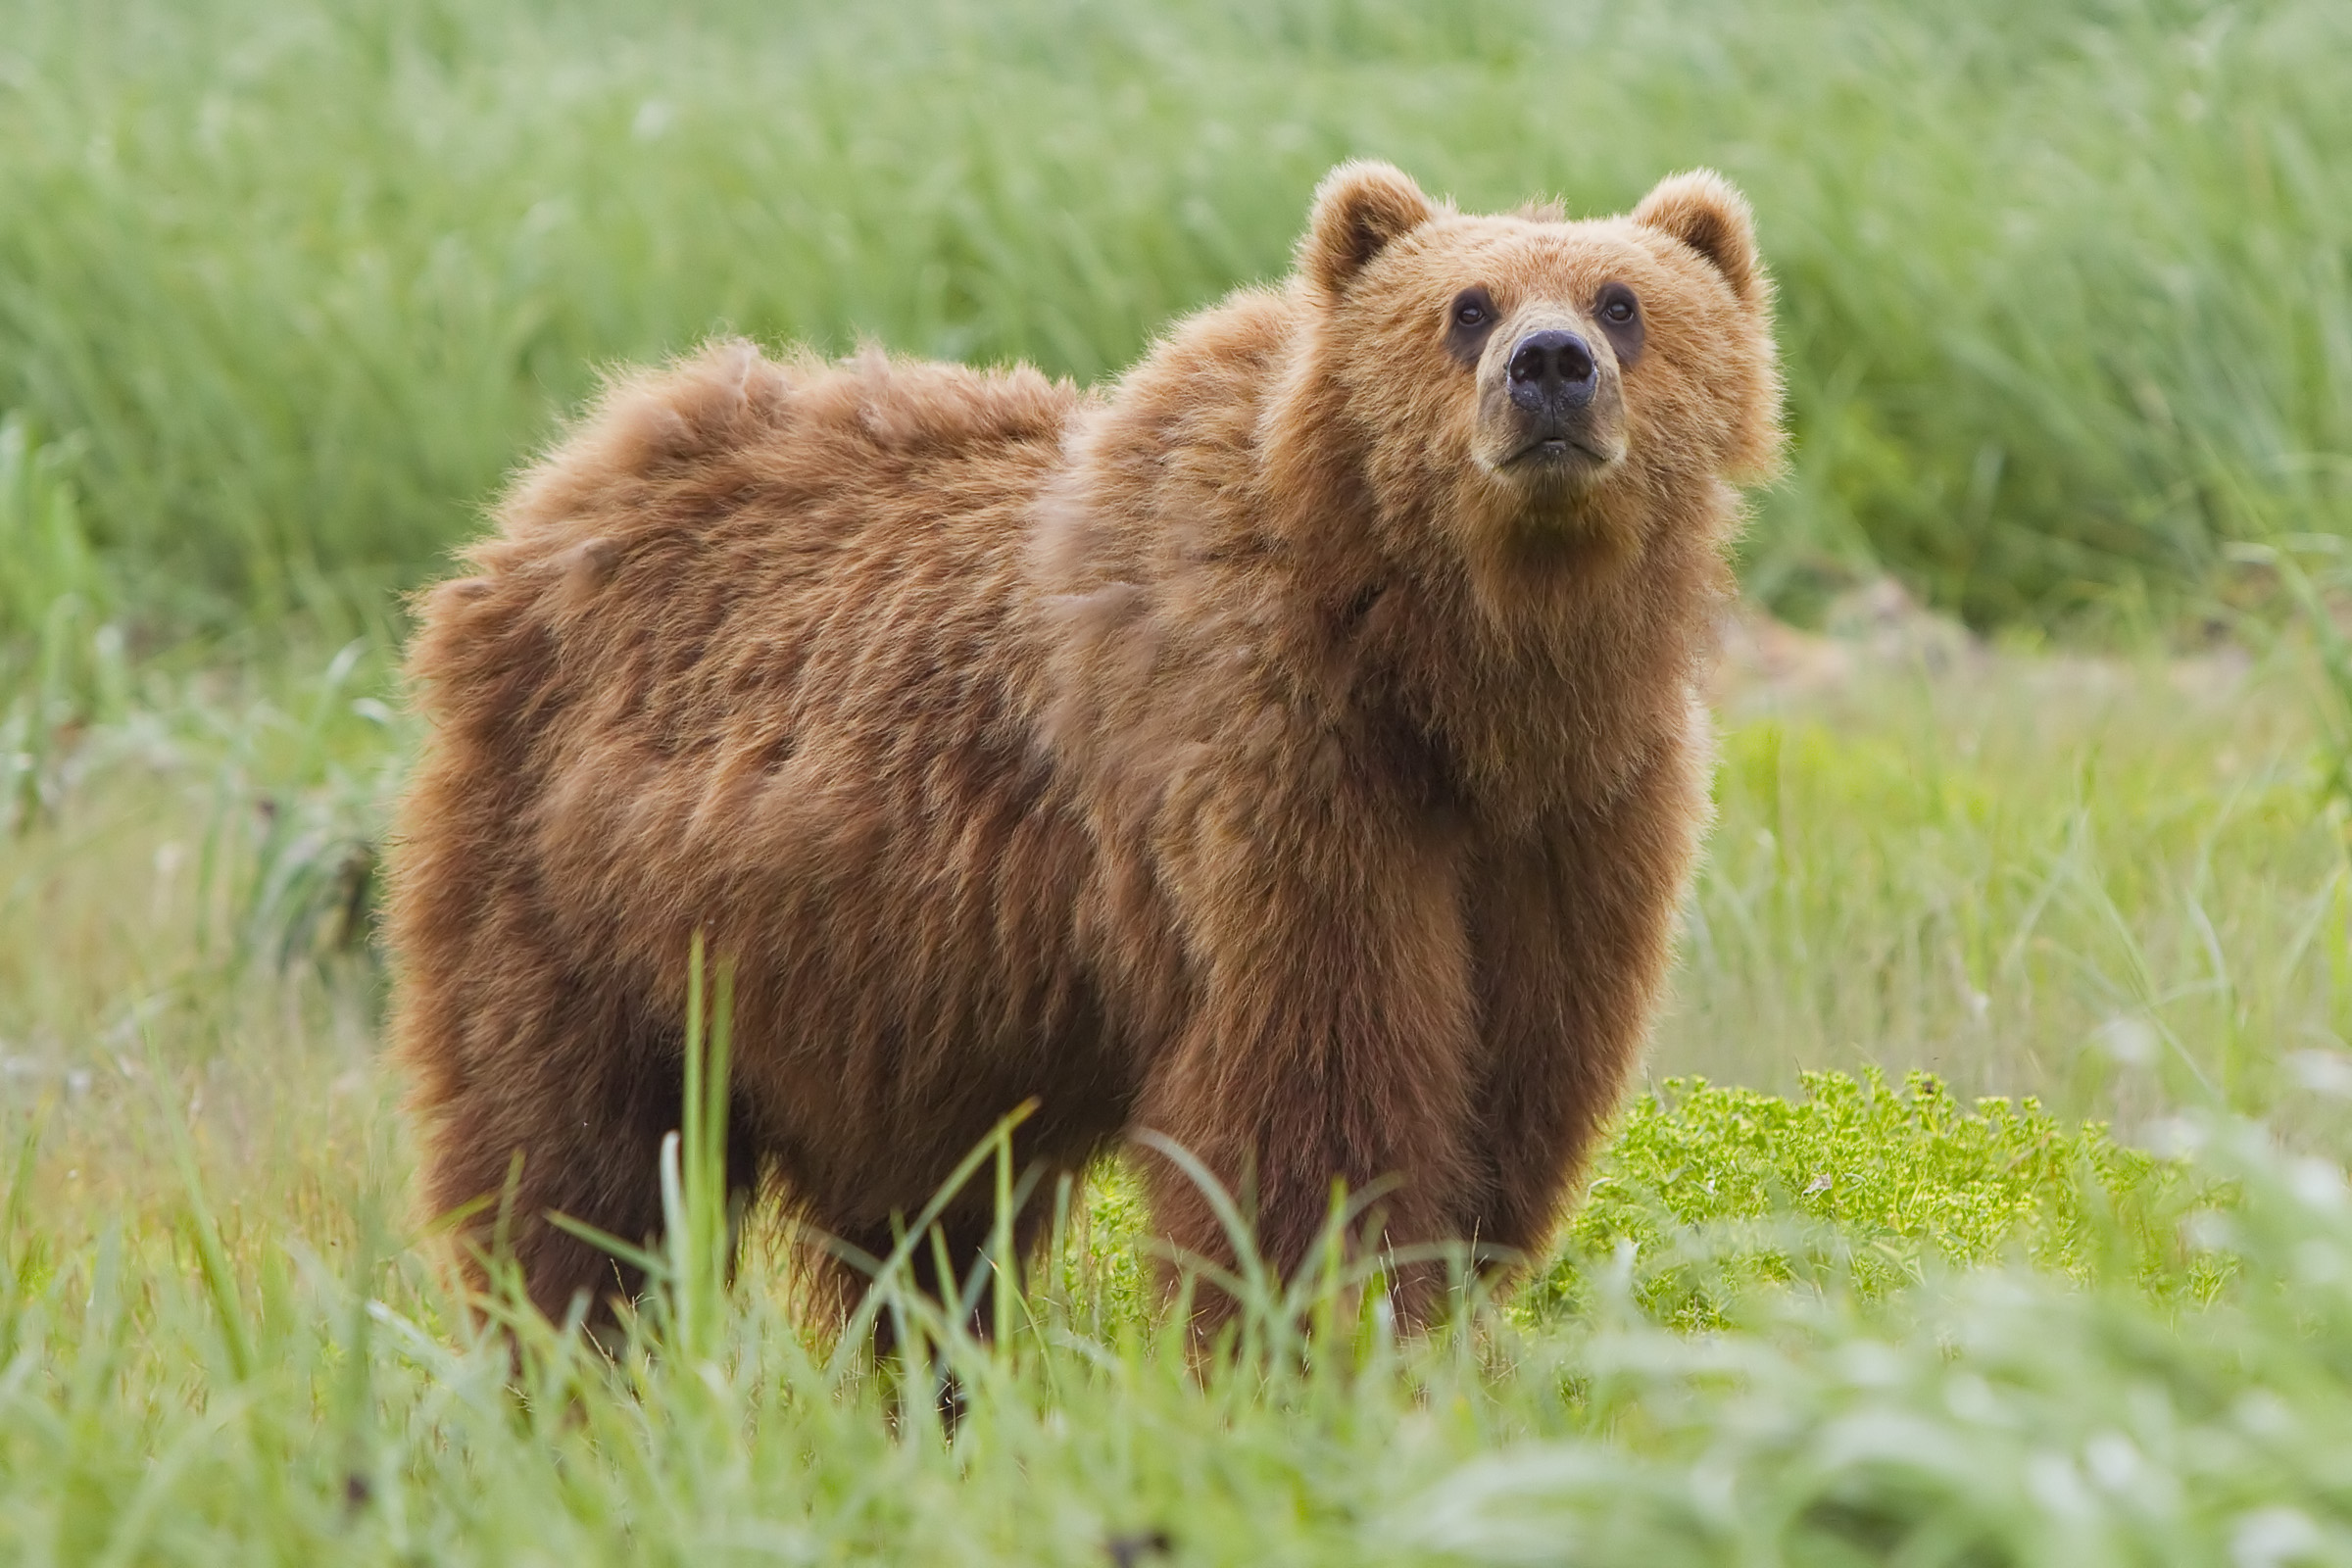 Brown bear - Wikipedia